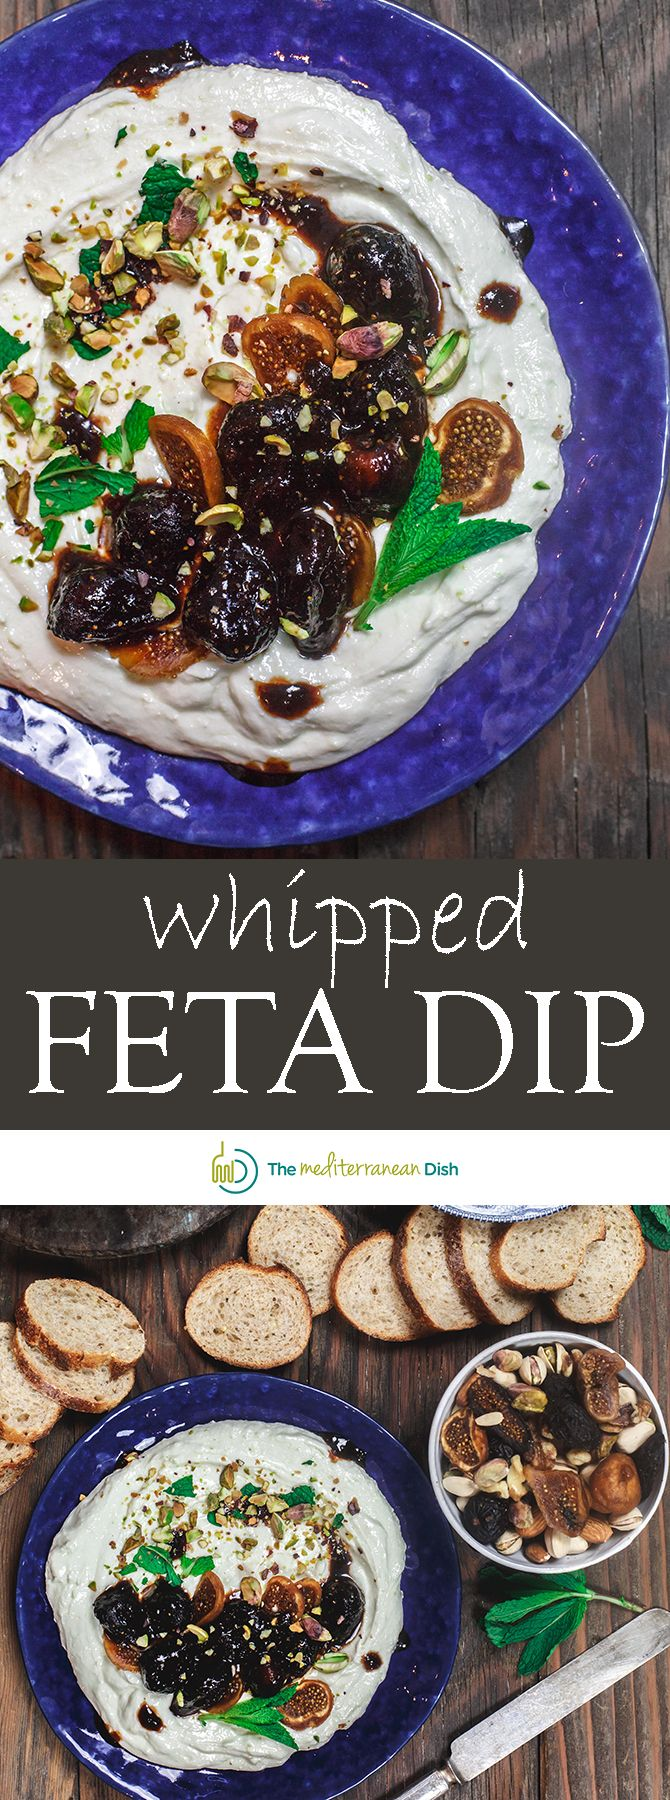 Whipped Feta Dip with Fig Marsla Sauce | The Mediterranean Dish. A quick creamy feta dip that comes together in like 10 minutes! Dried figs poaches in Marsala wine makes the perfect sauce on top. I make this for the holidays, Christmas, and every occasion I can! So good and easy! See it on TheMediterraneanDish.com